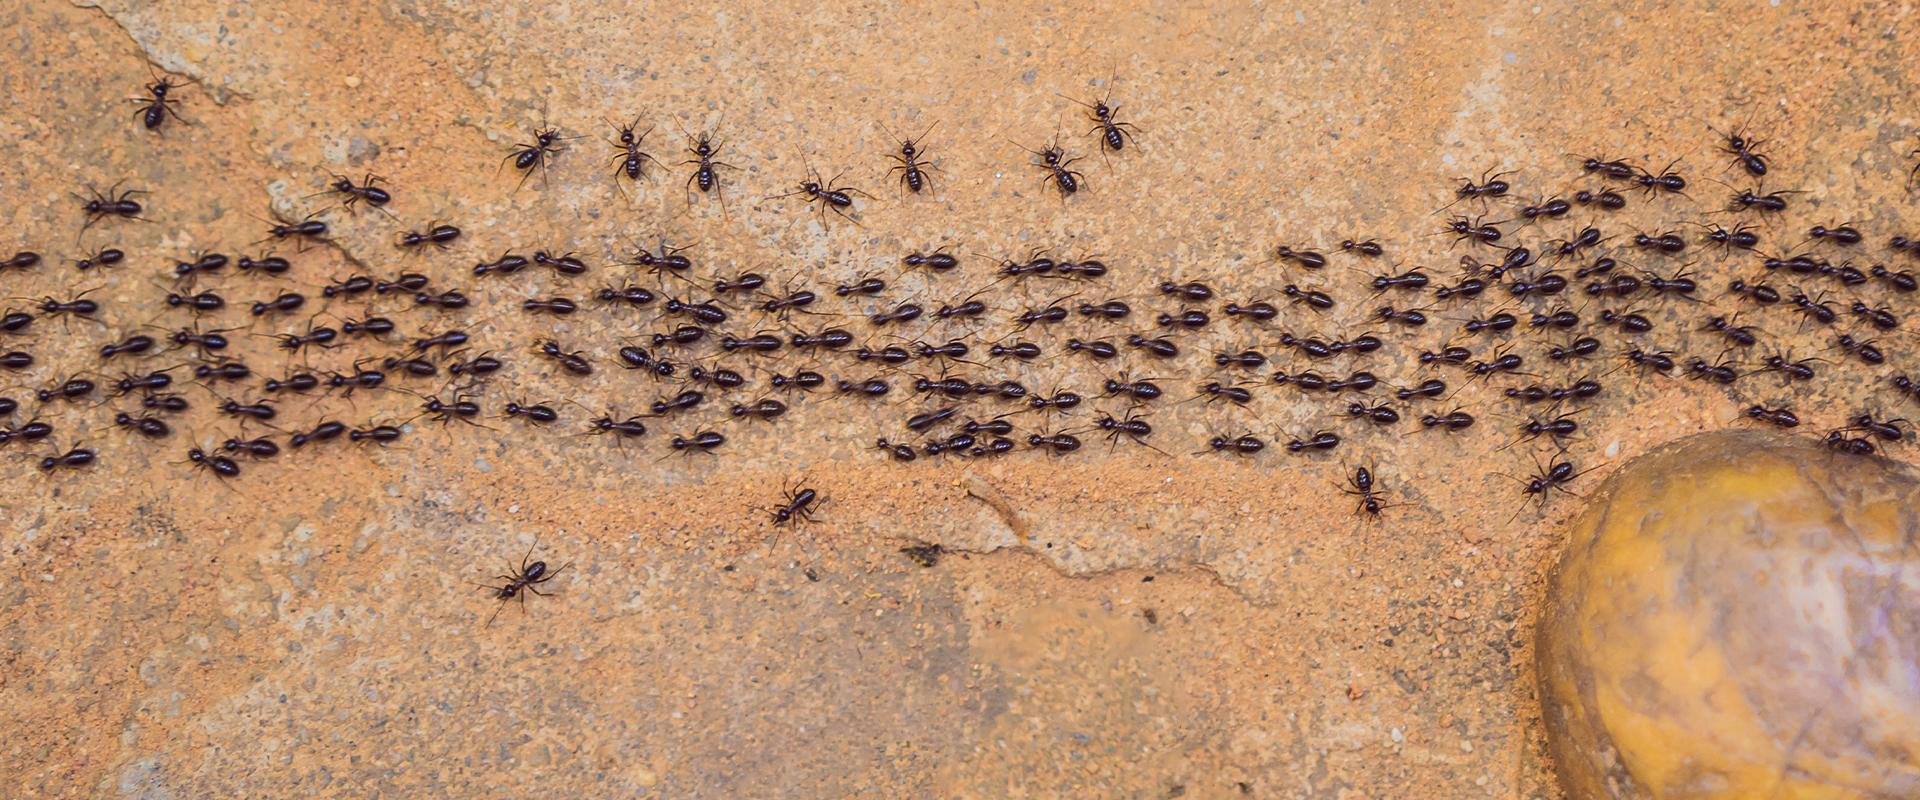 ants marching on dirt